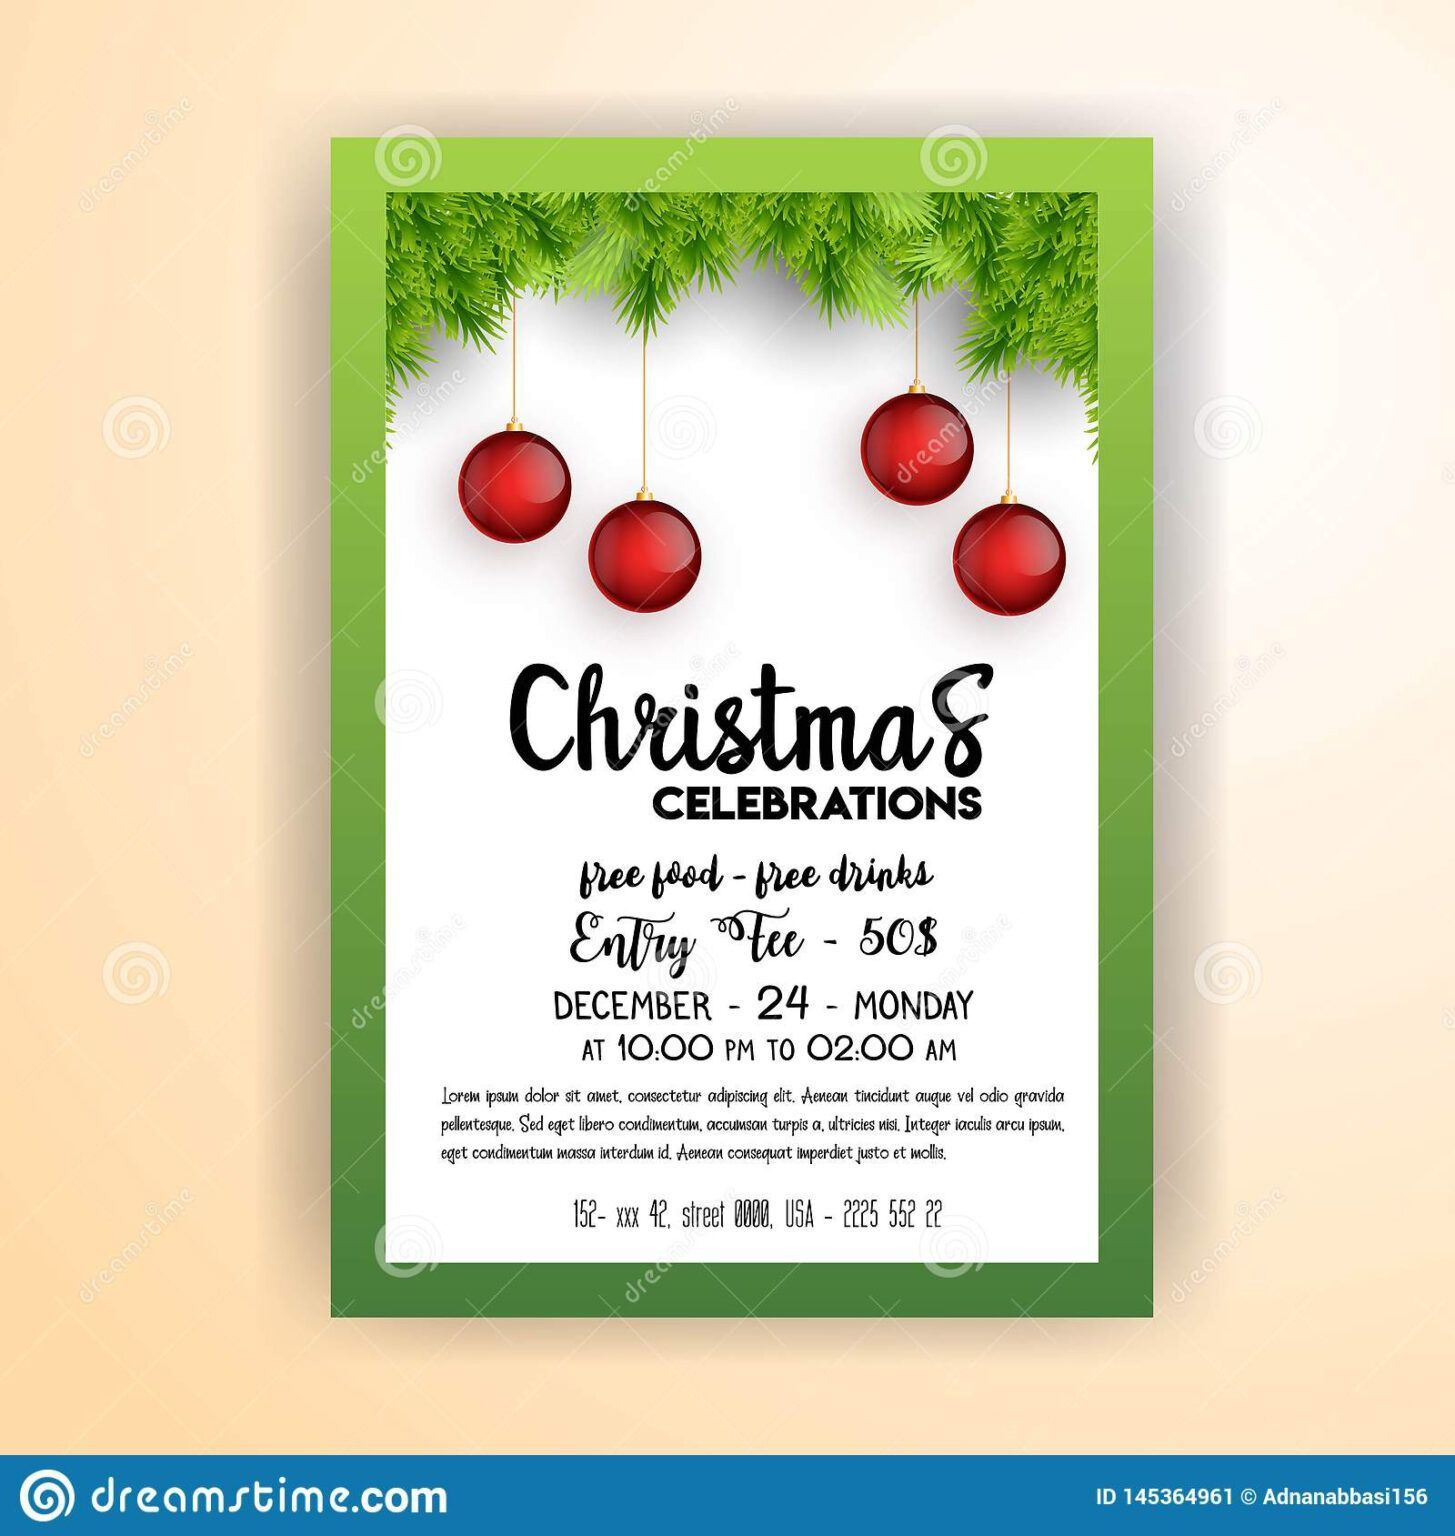 000 Excellent Christma Party Flyer Template Free High Def  Company Invitation Printable WordFull